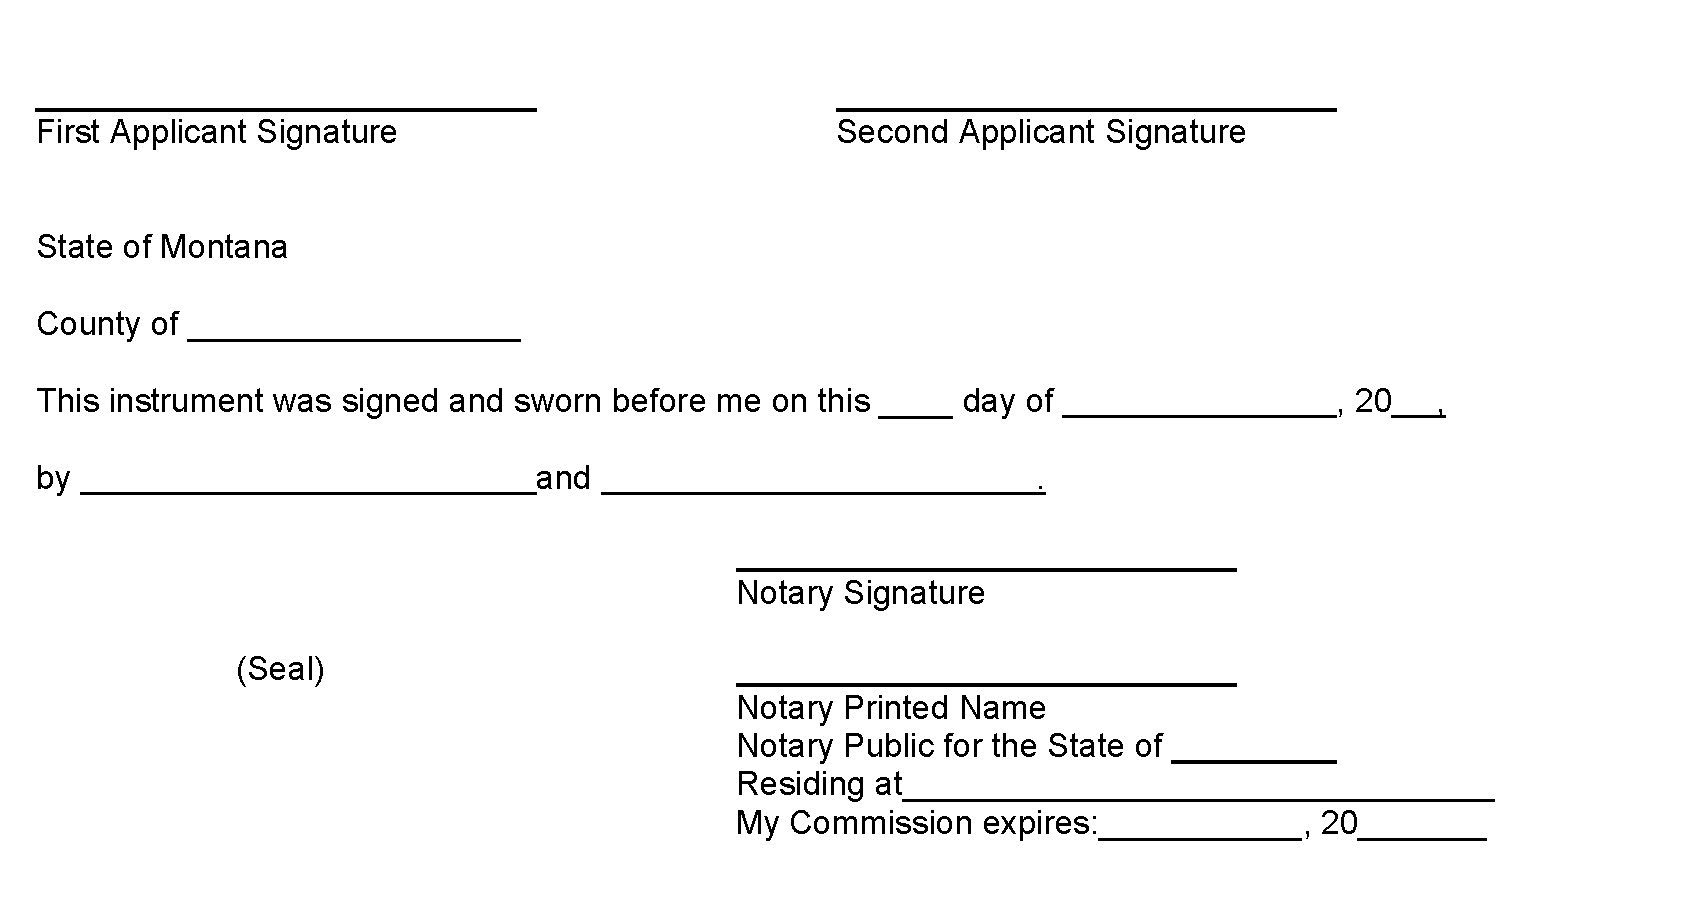 Signatures and Notary